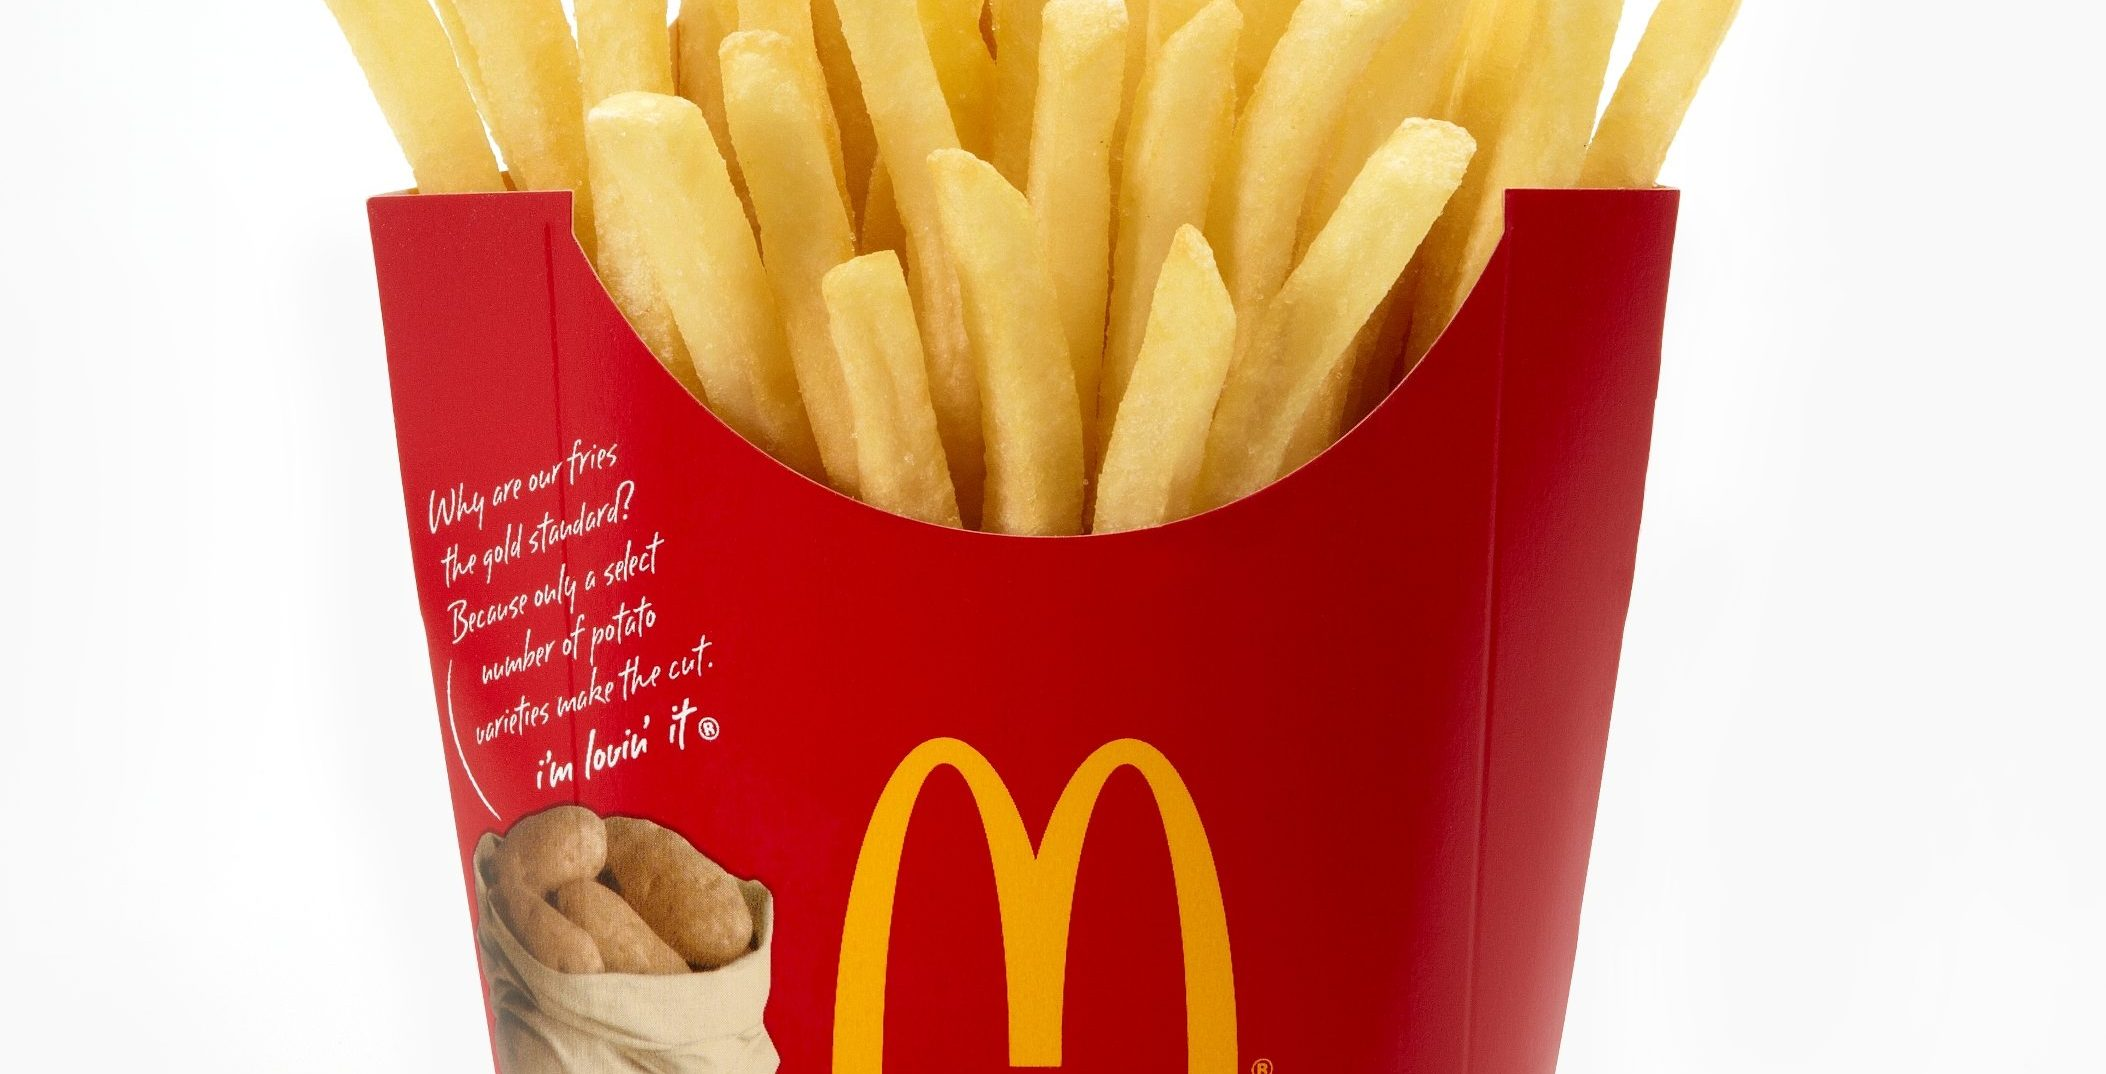 It's time to ditch the diet as McDonald's is offering FREE FOOD throughout January